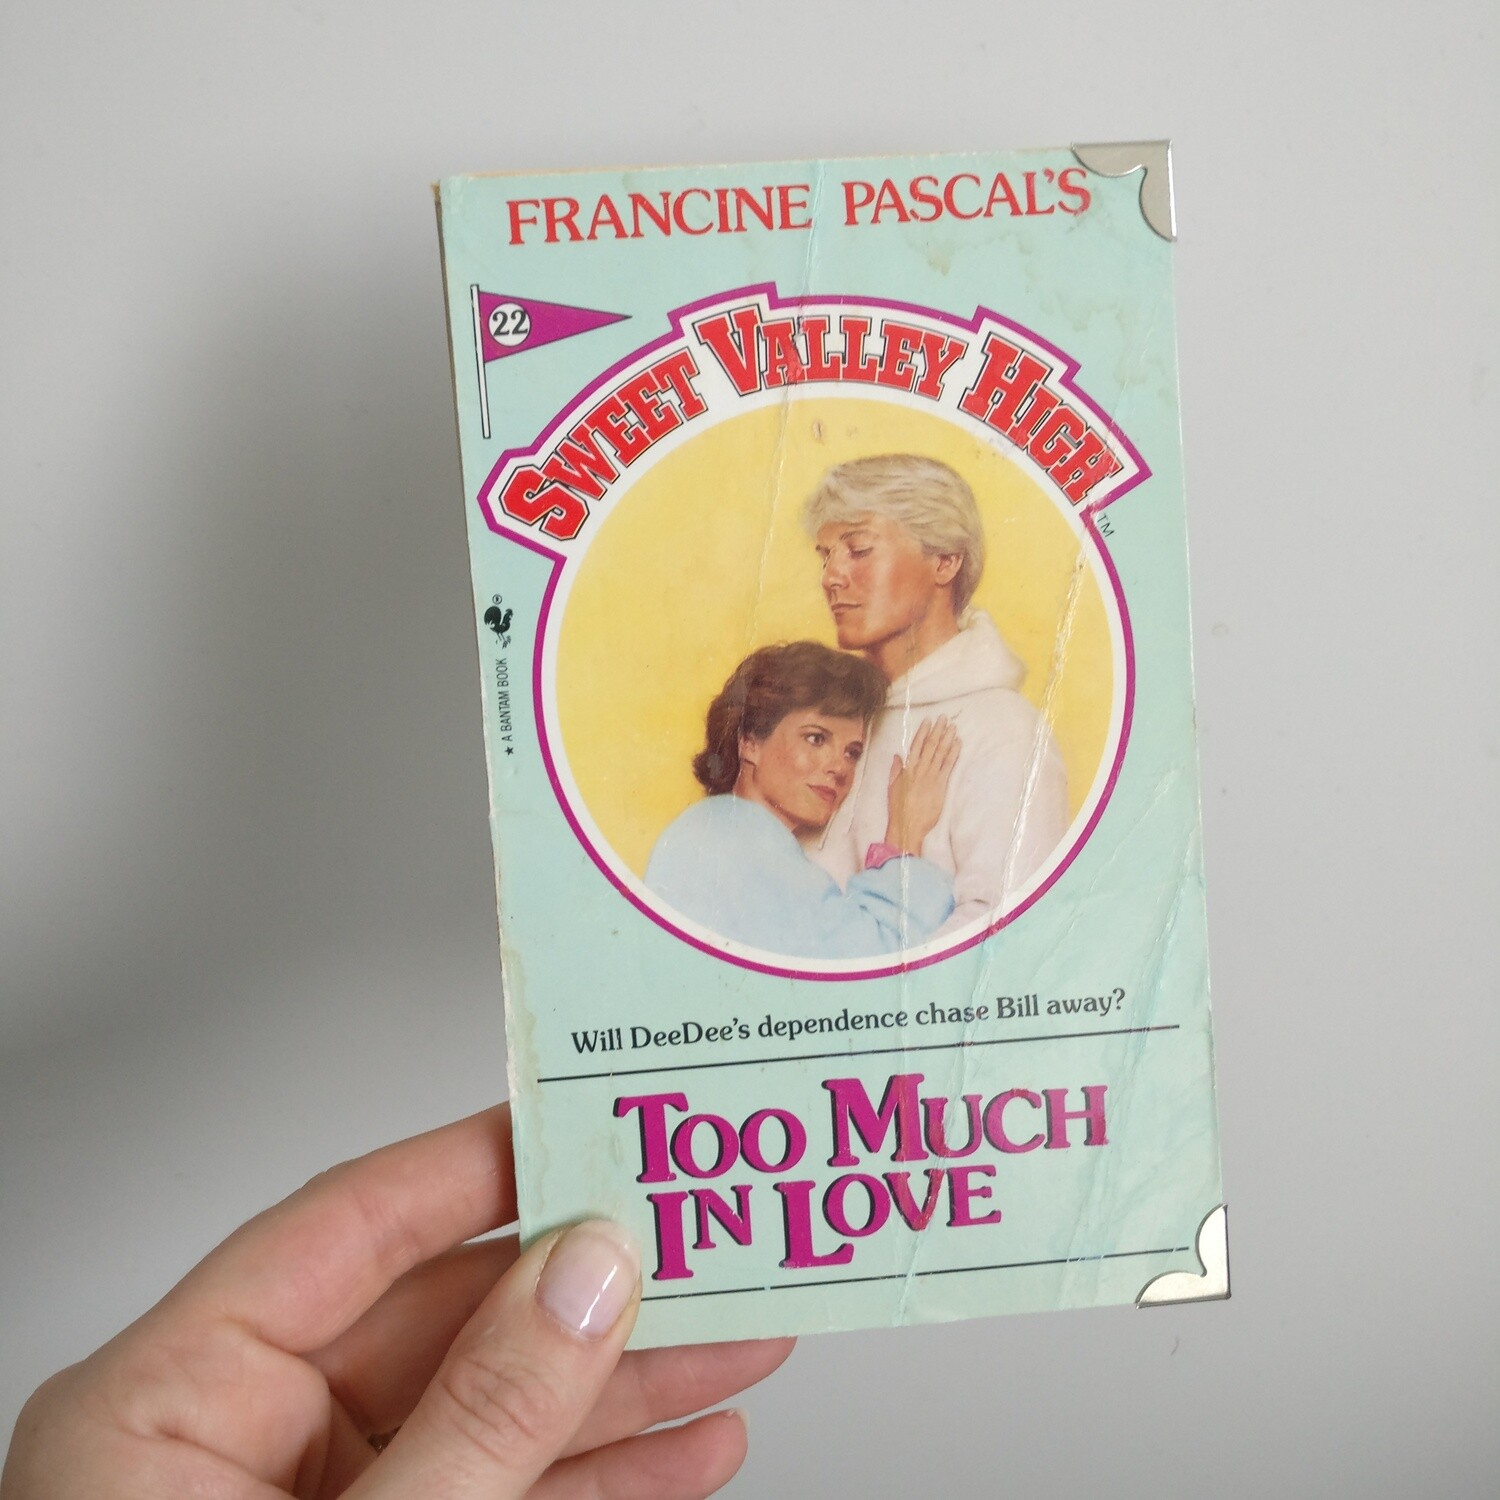 Sweet Valley High Notebook - made from a paperback book